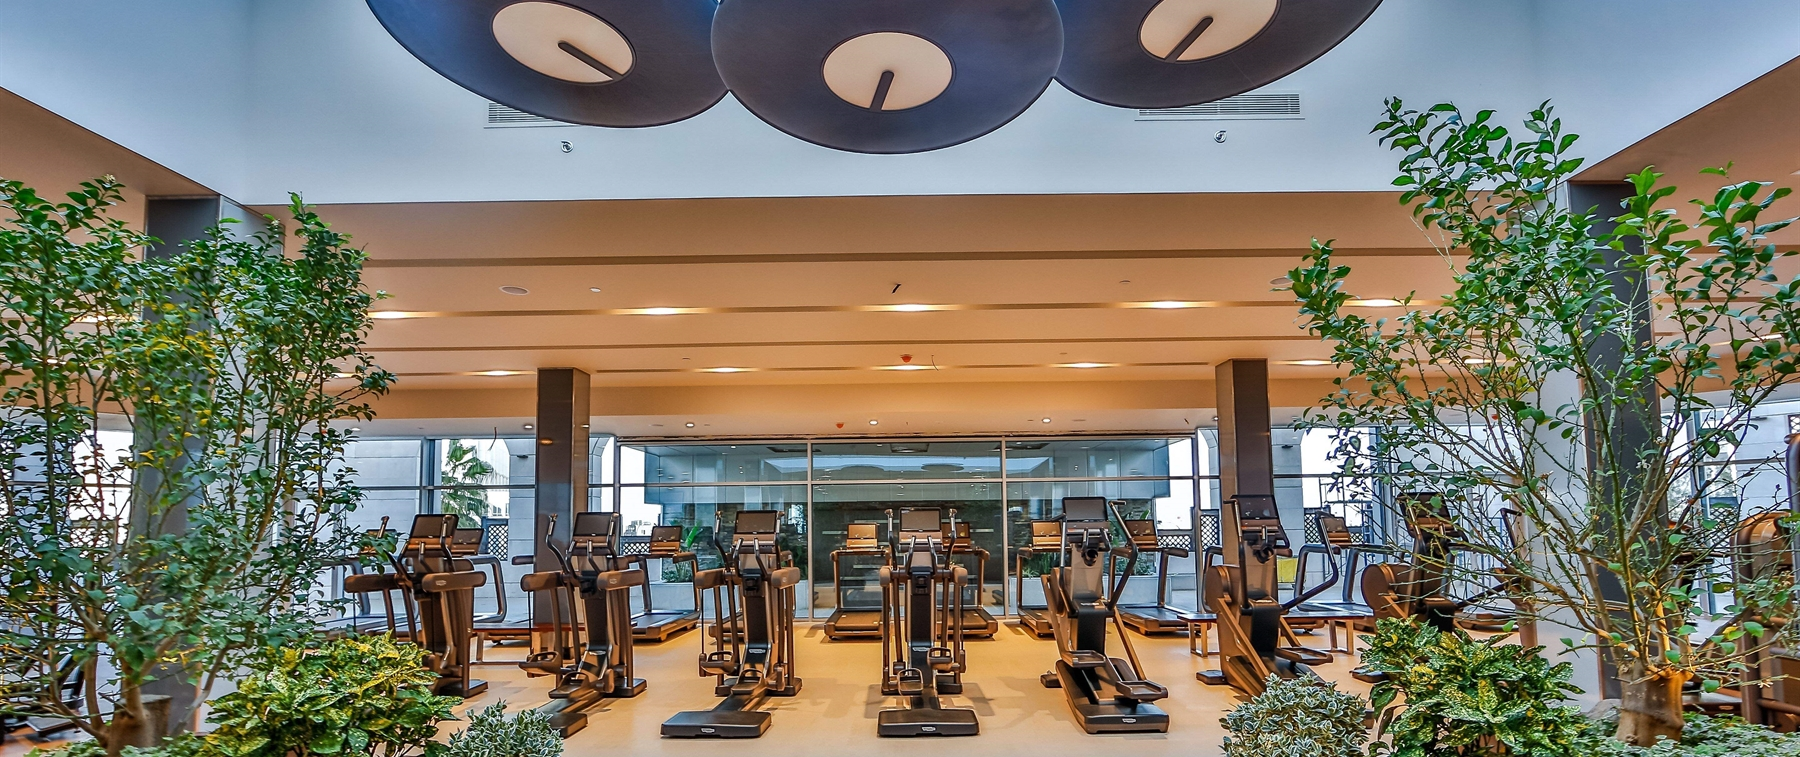 Join Our Gym at Shine Spa